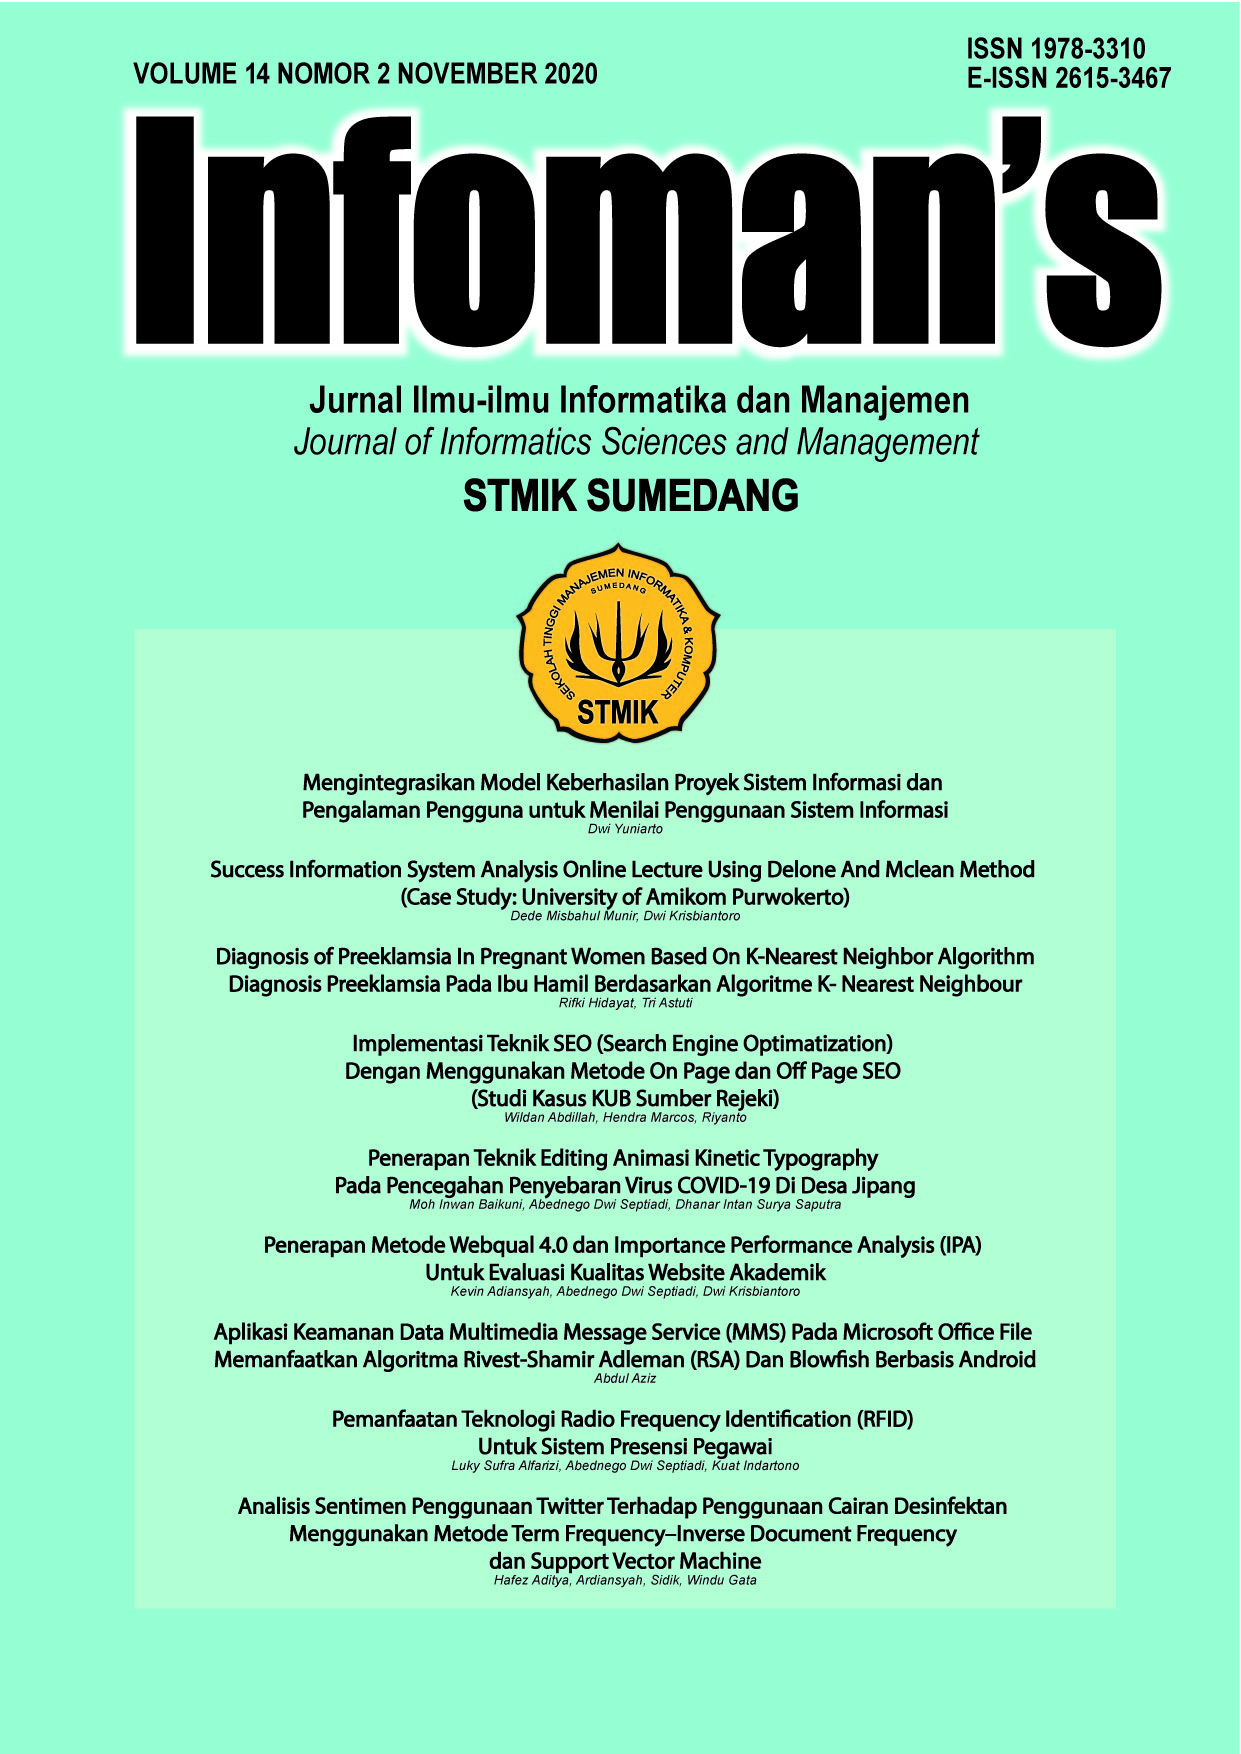 Infoman's Volume 14 No 2 November 2020